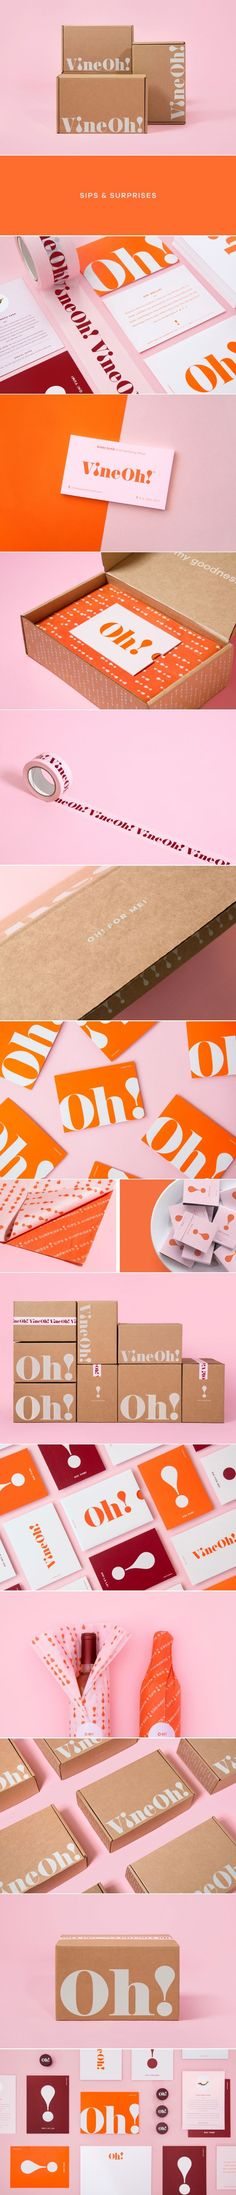 Vine Oh! wine branding and packaging by Morgan Stephens | Fivestar Branding Agency – Design and Branding Agency & Curated Inspiration Gallery